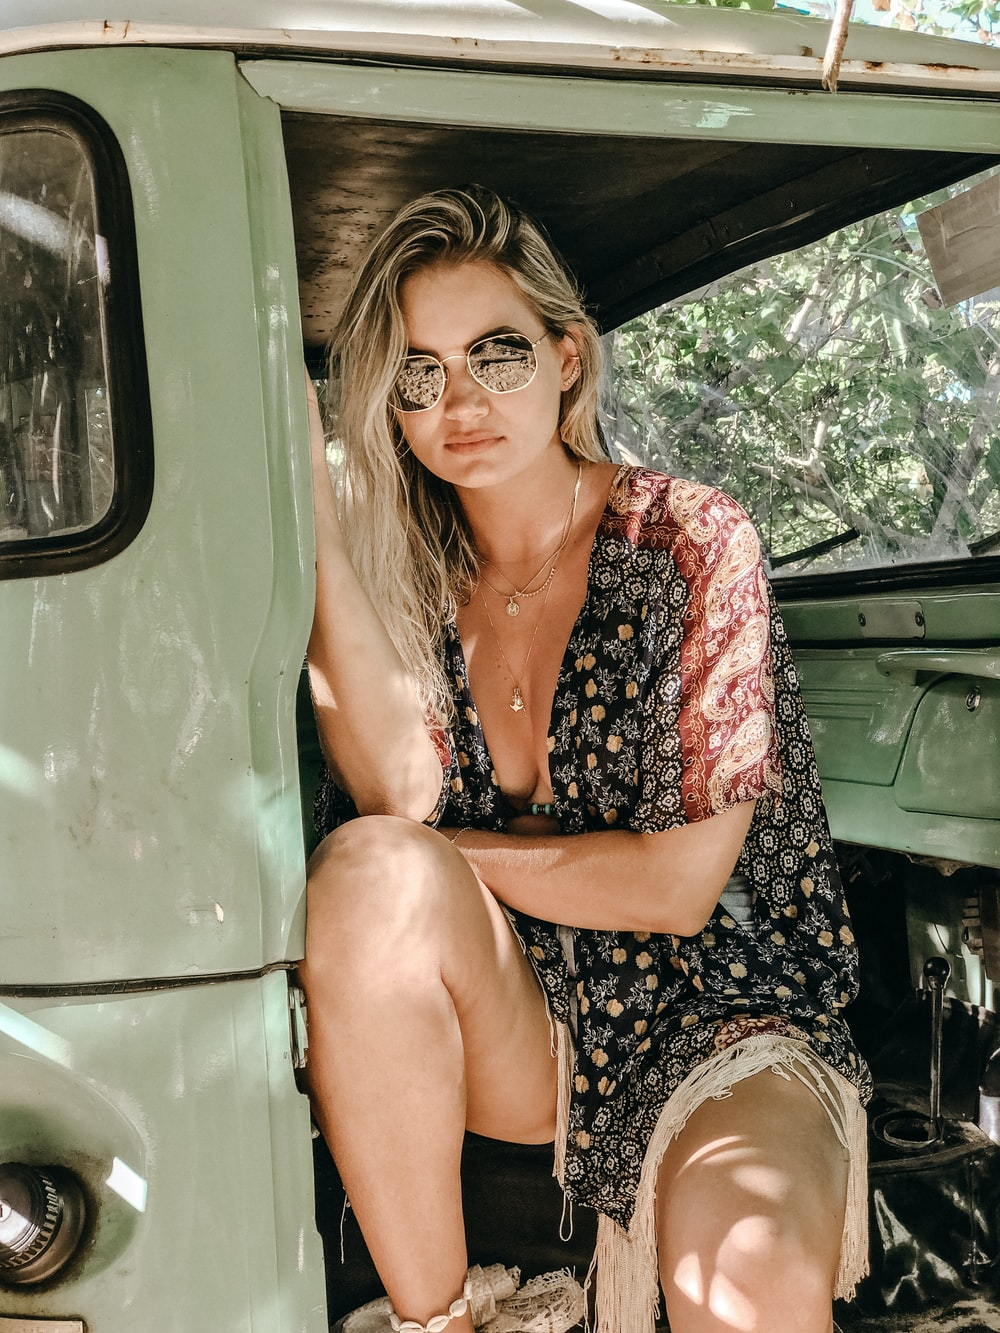 woman wearing floral dress and sunglasses sitting on vehicle